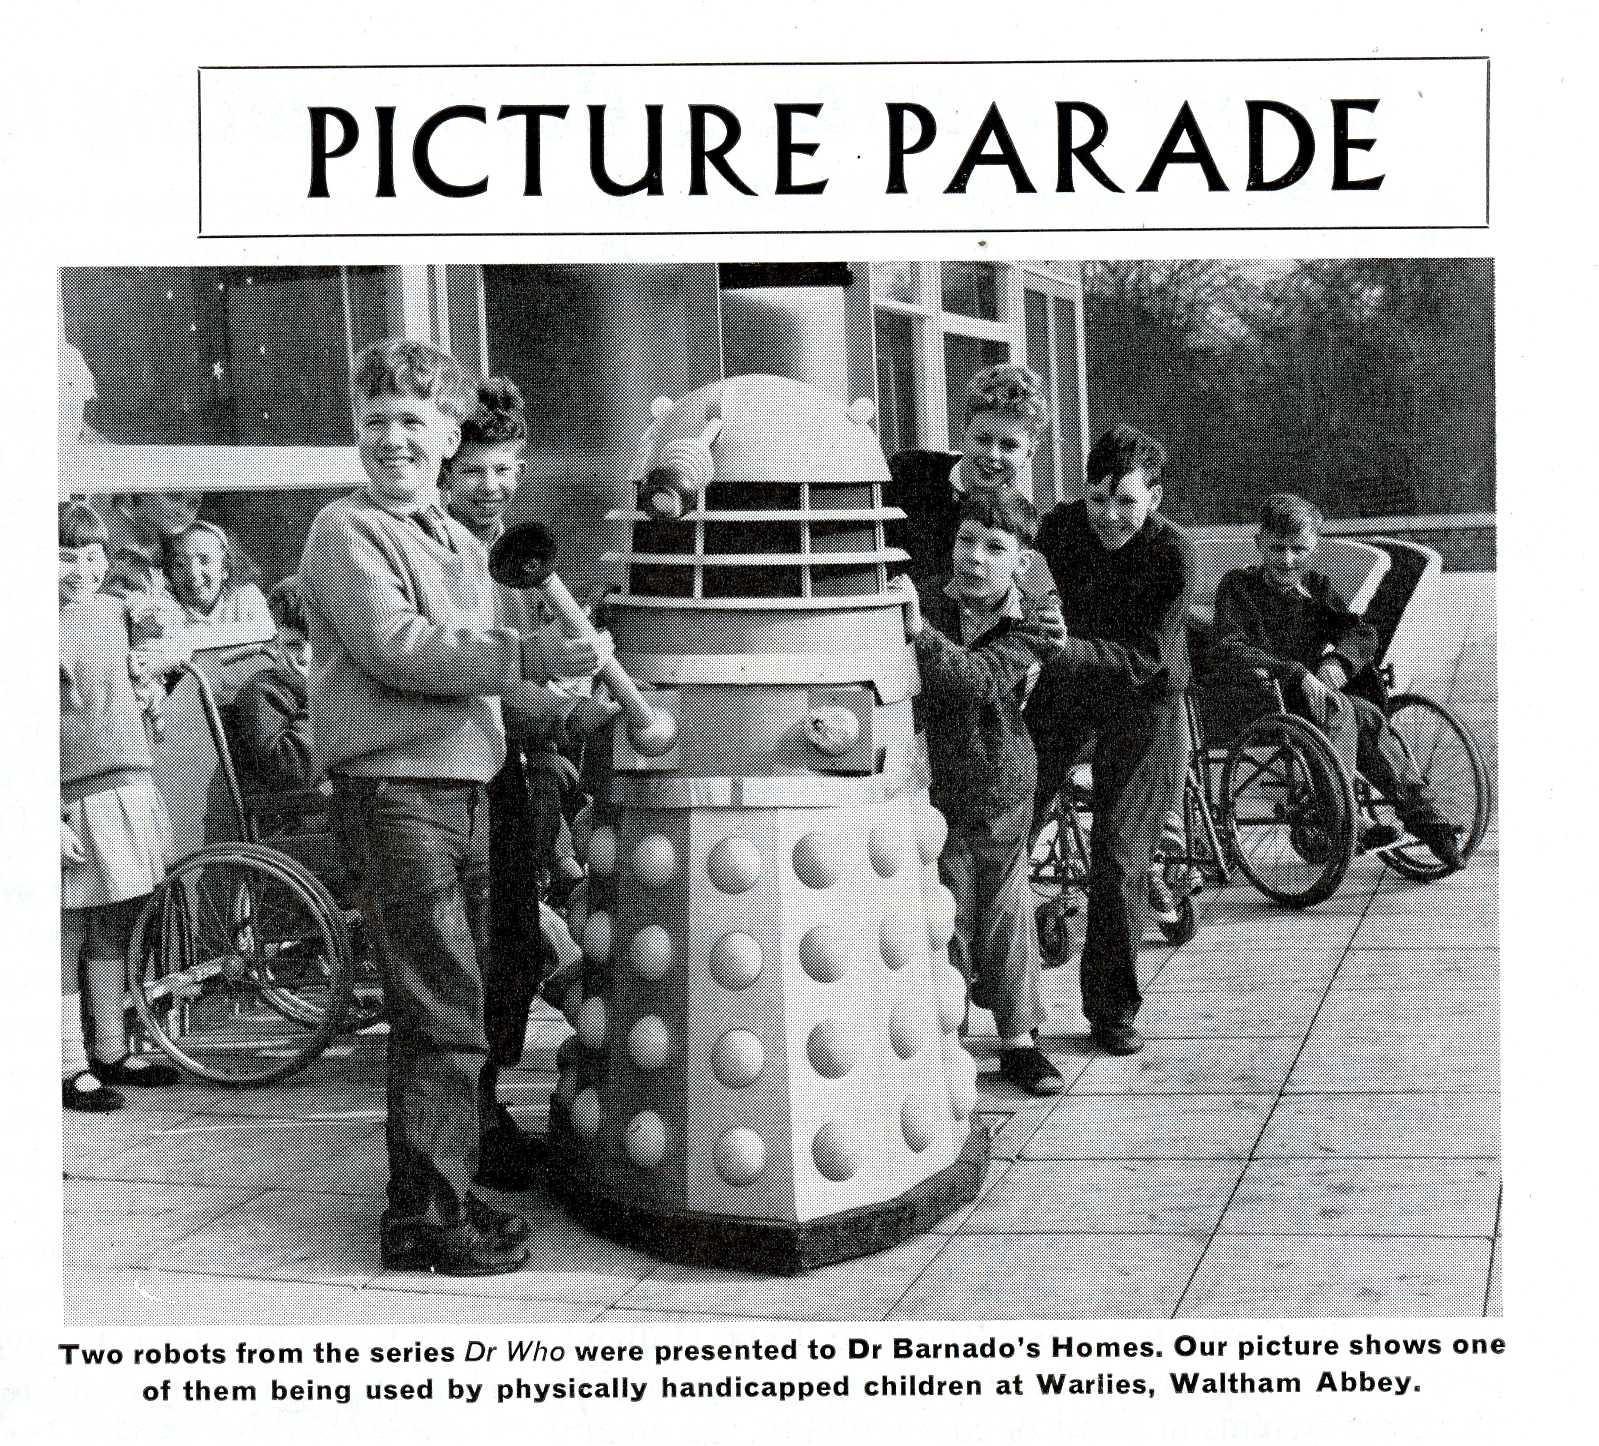 Ariel. Photo of the donation of a Dalek to a Dr. Barnado's Home, March 1964